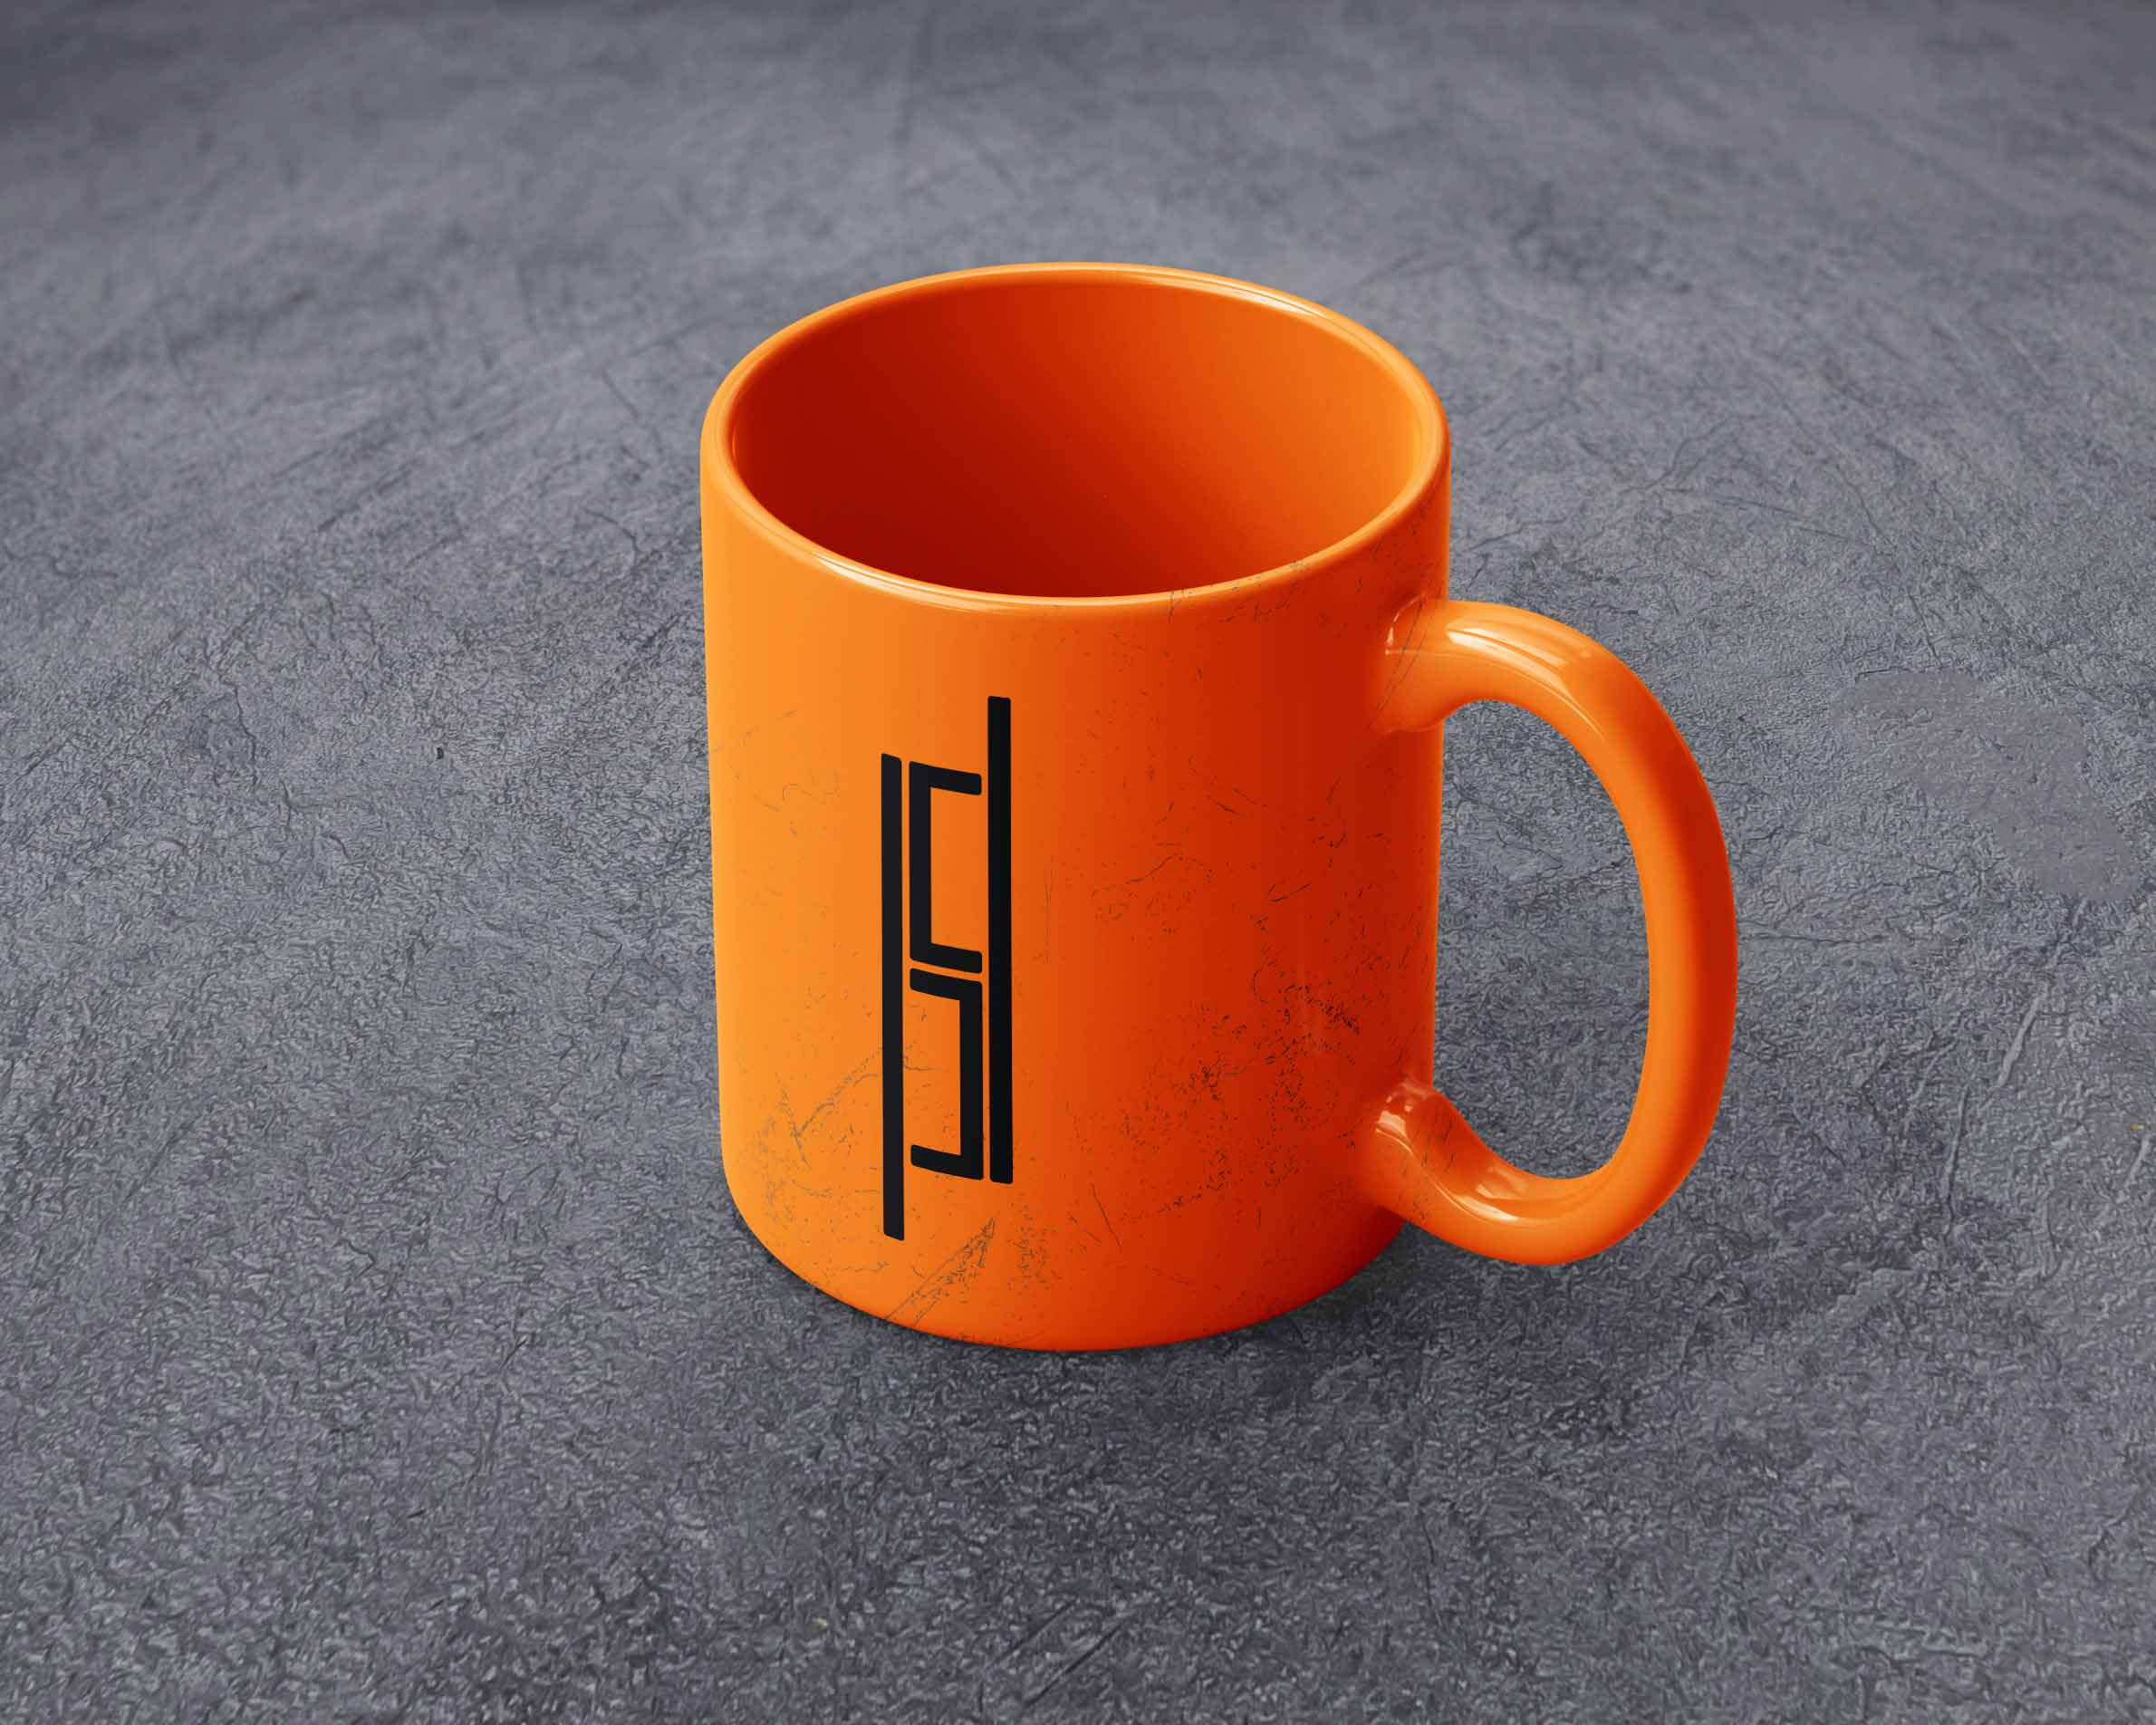 An orange mug with a stacked lockup of the Bartlesville Redi-Mix logo concept